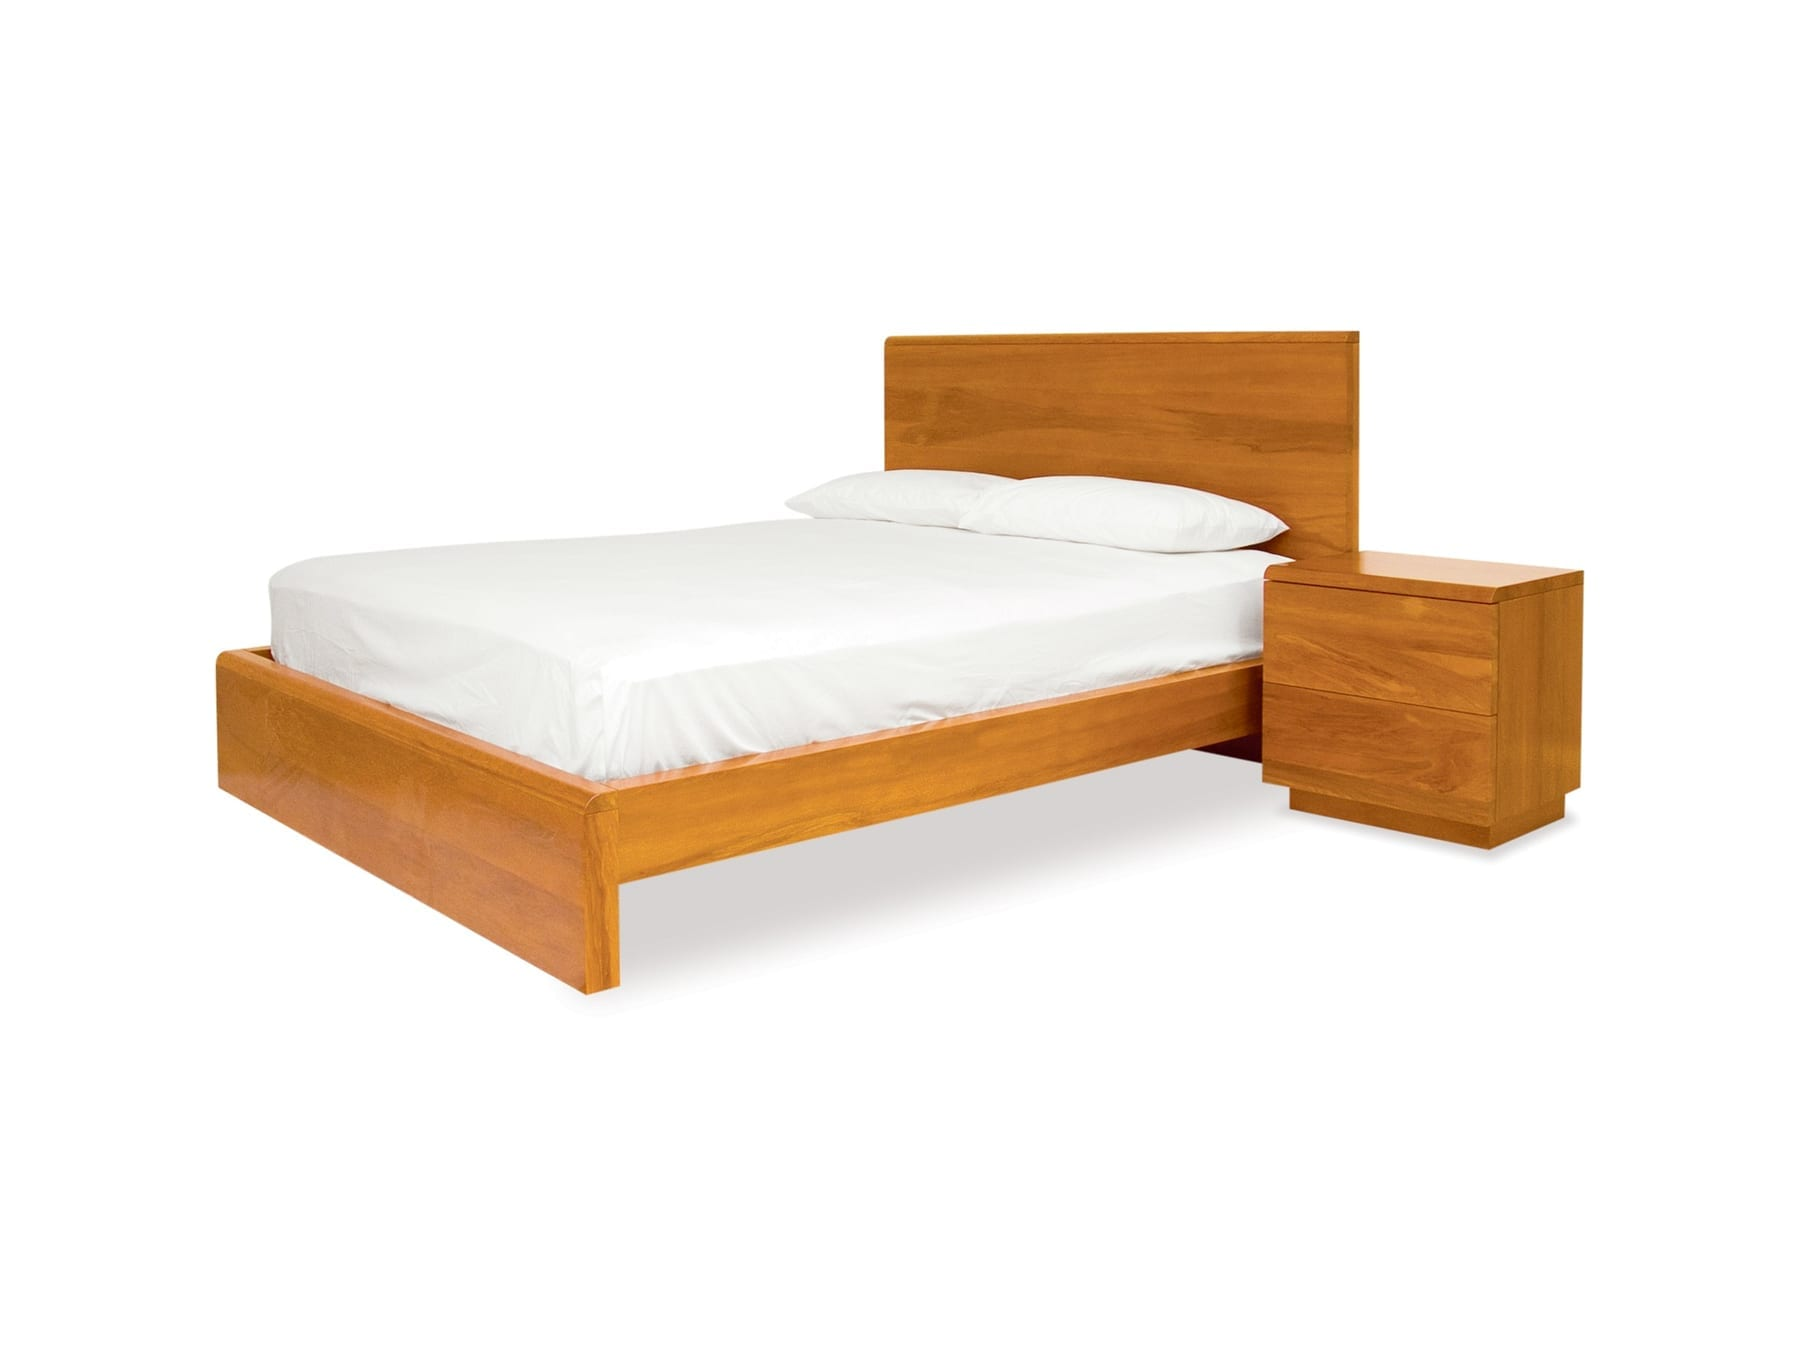 East West Designs Wynyard Bedframe available at McKenzie & Willis